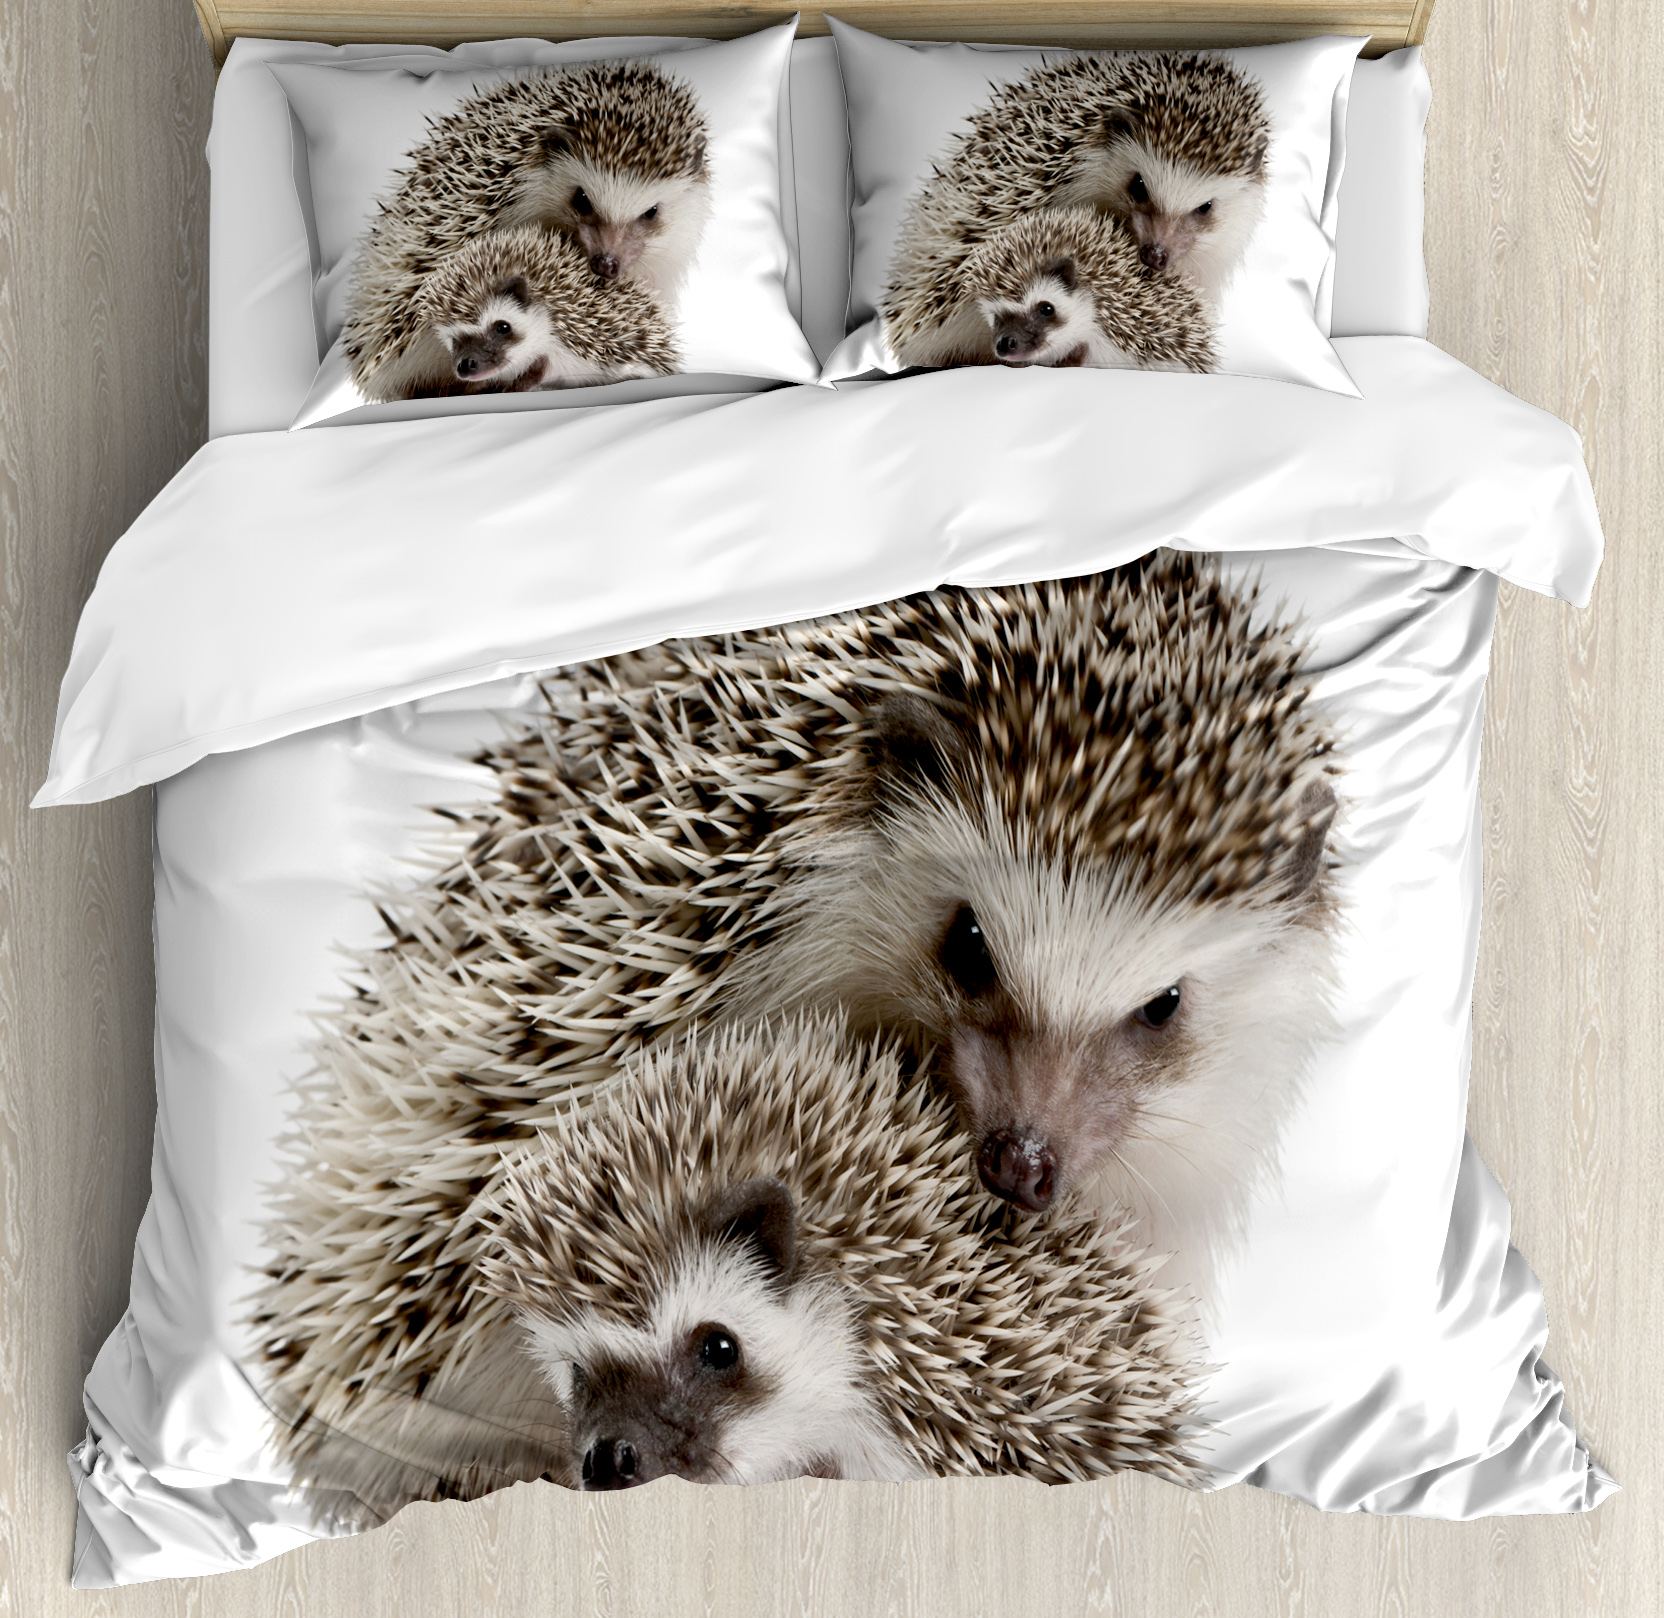 Hedgehog Queen Size Duvet Cover Set, Atelerix Albiventris Photography with Mother and... by Kozmos